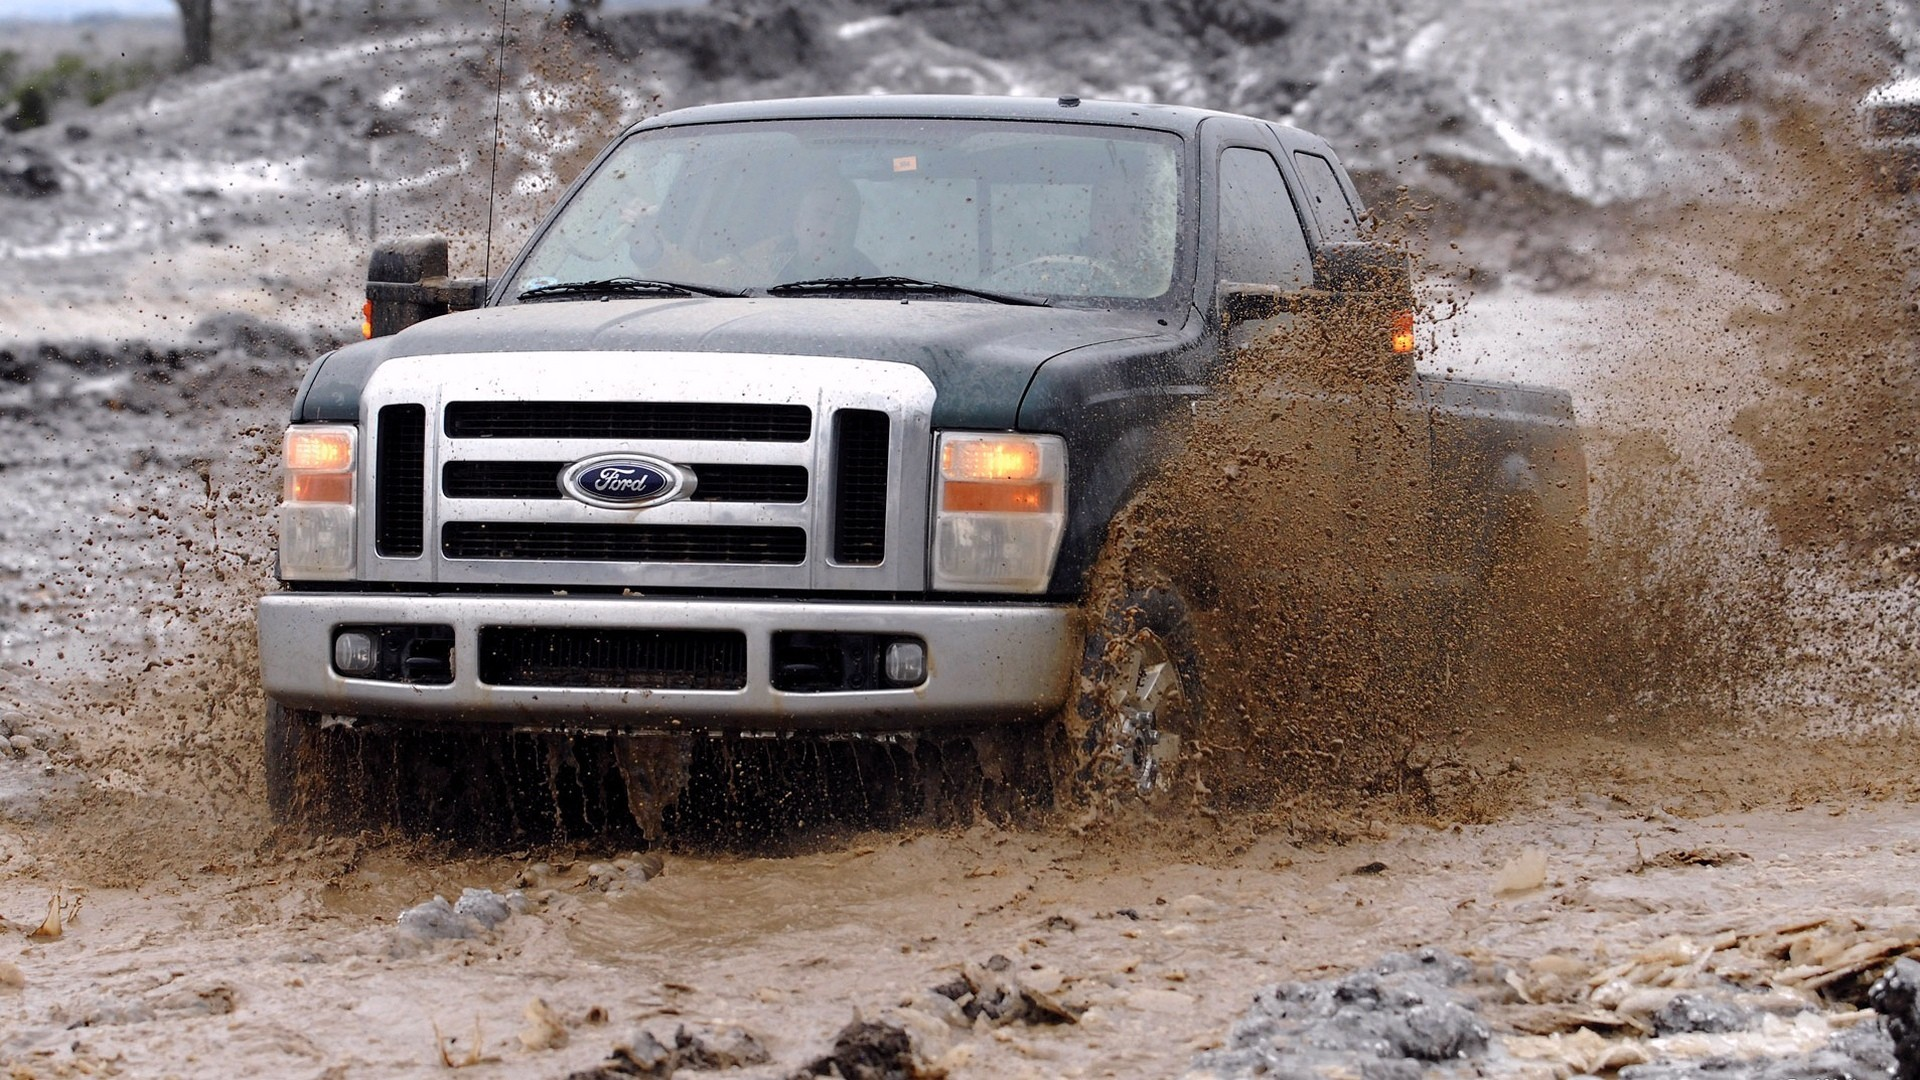 cars Ford vehicles pickup HD Wallpaper